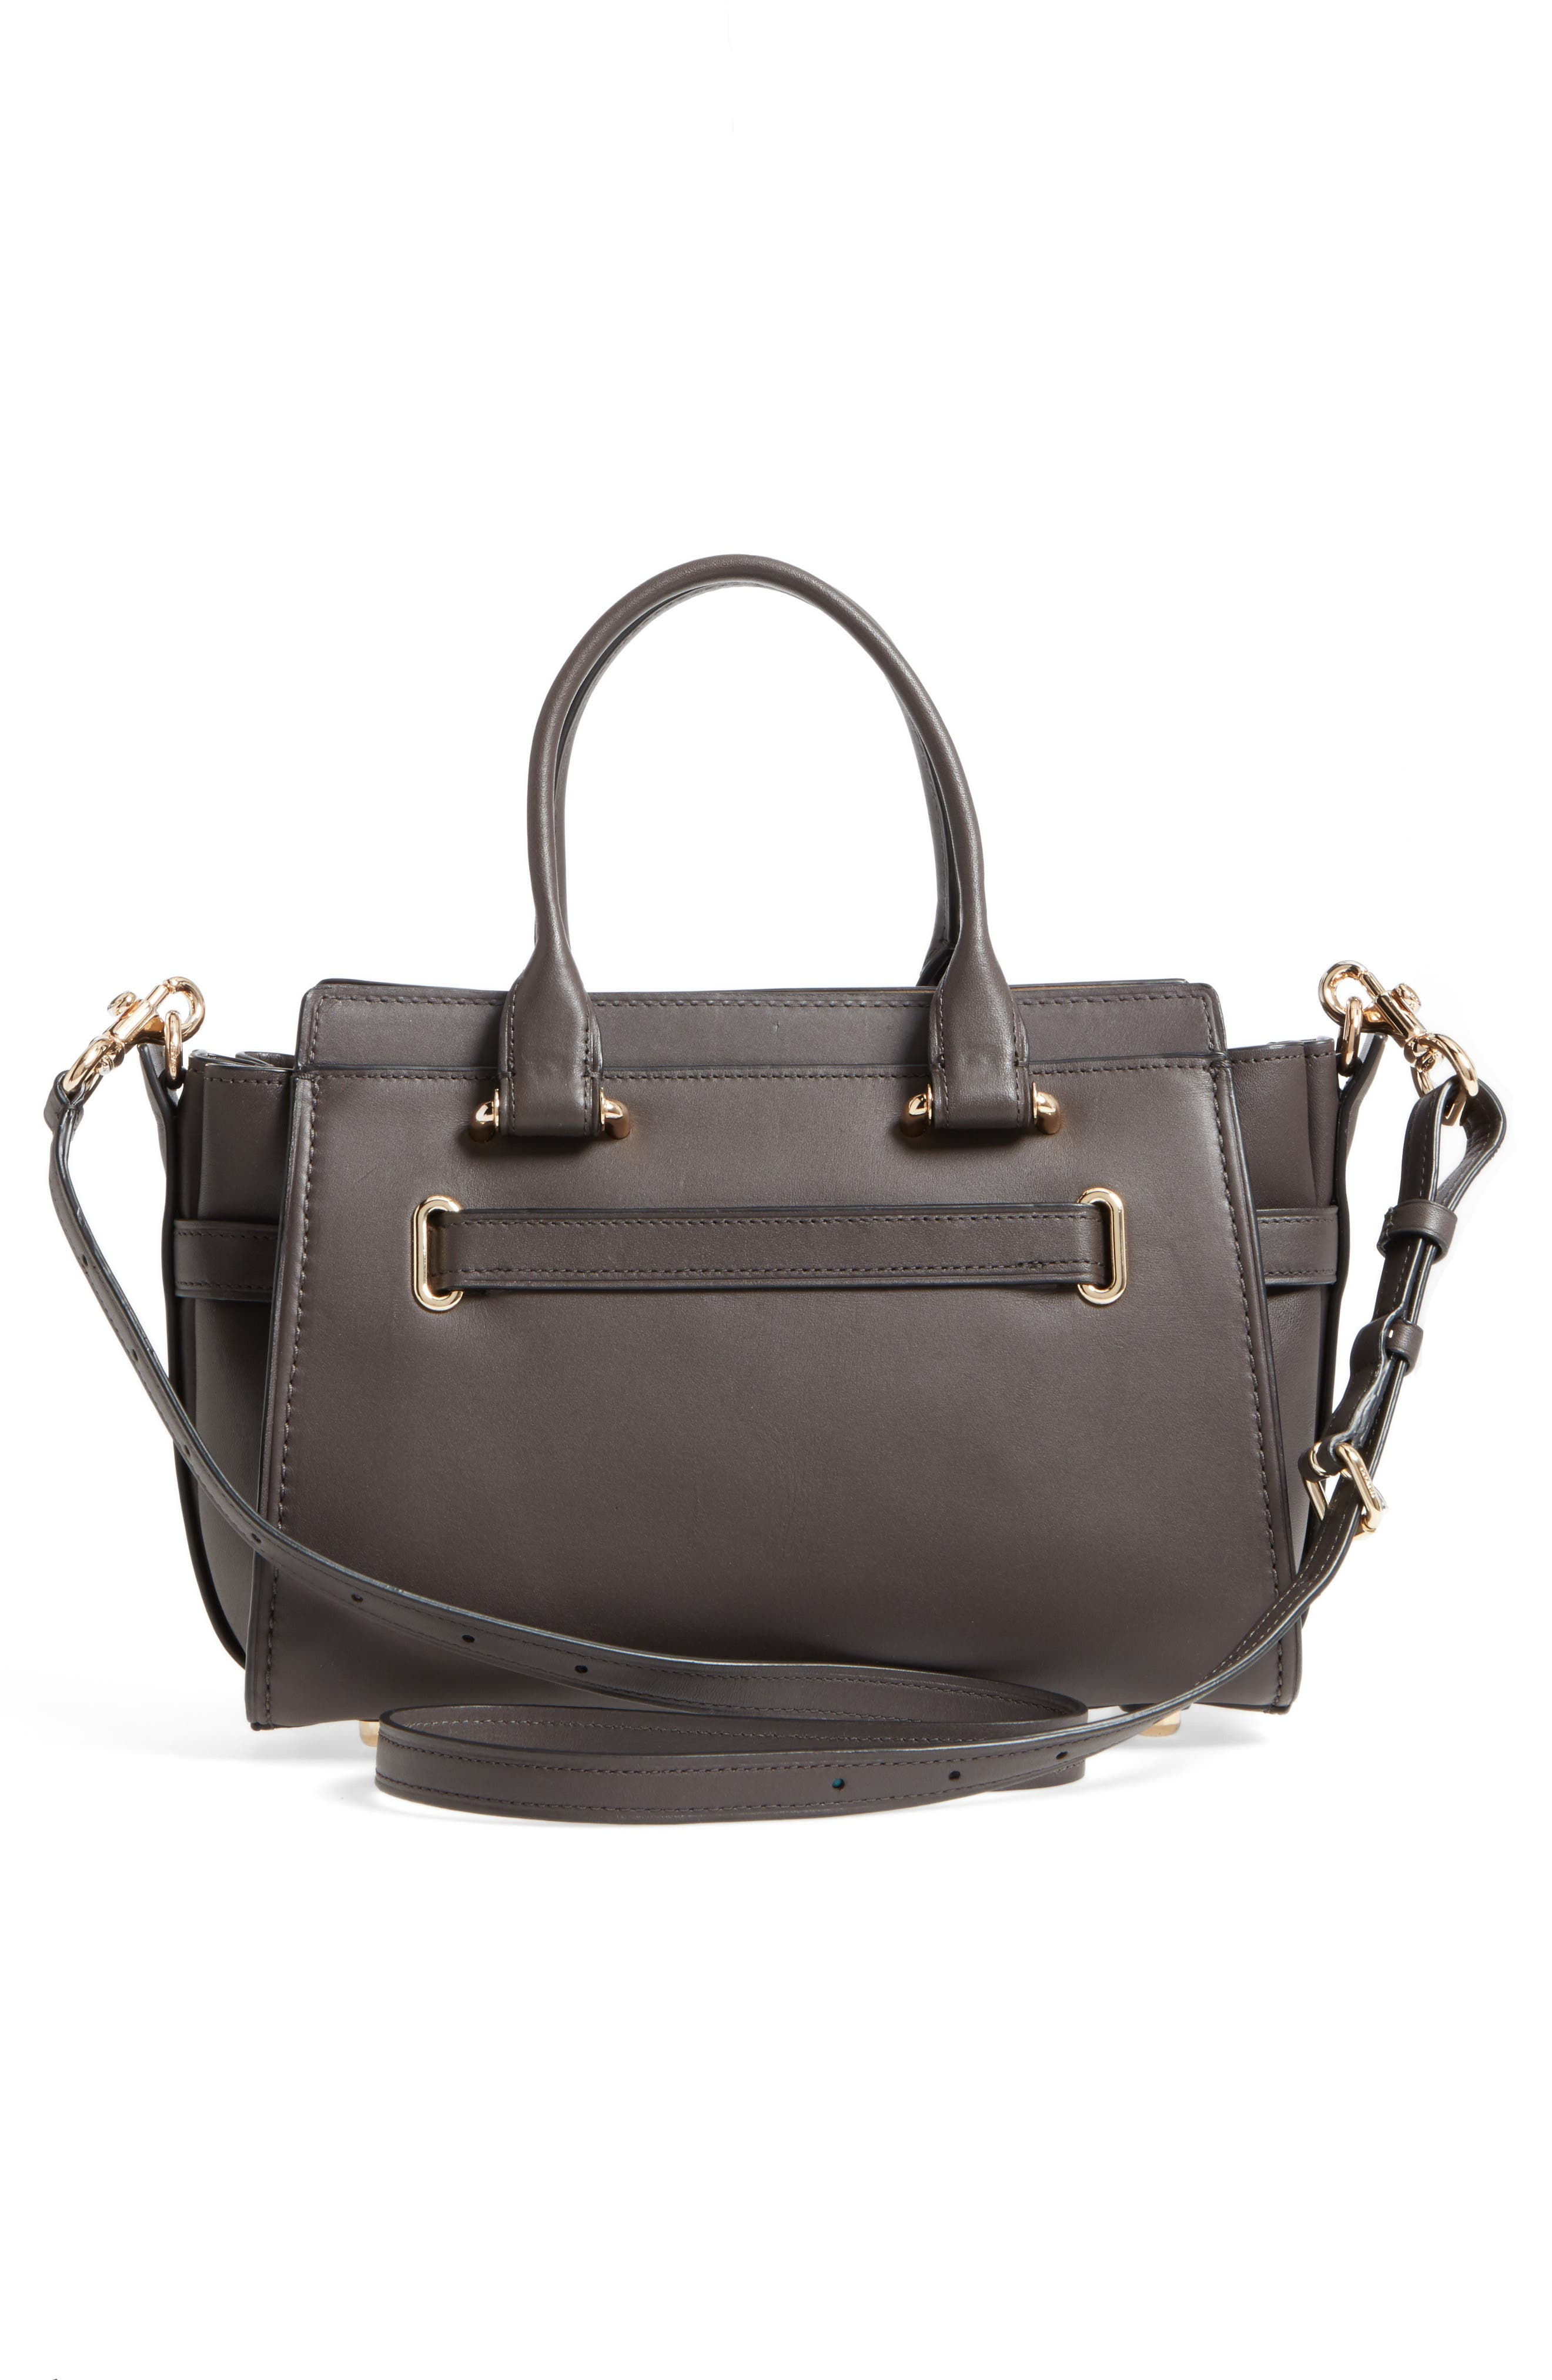 Swagger 27 Calfskin Leather Satchel,                             Alternate thumbnail 6, color,